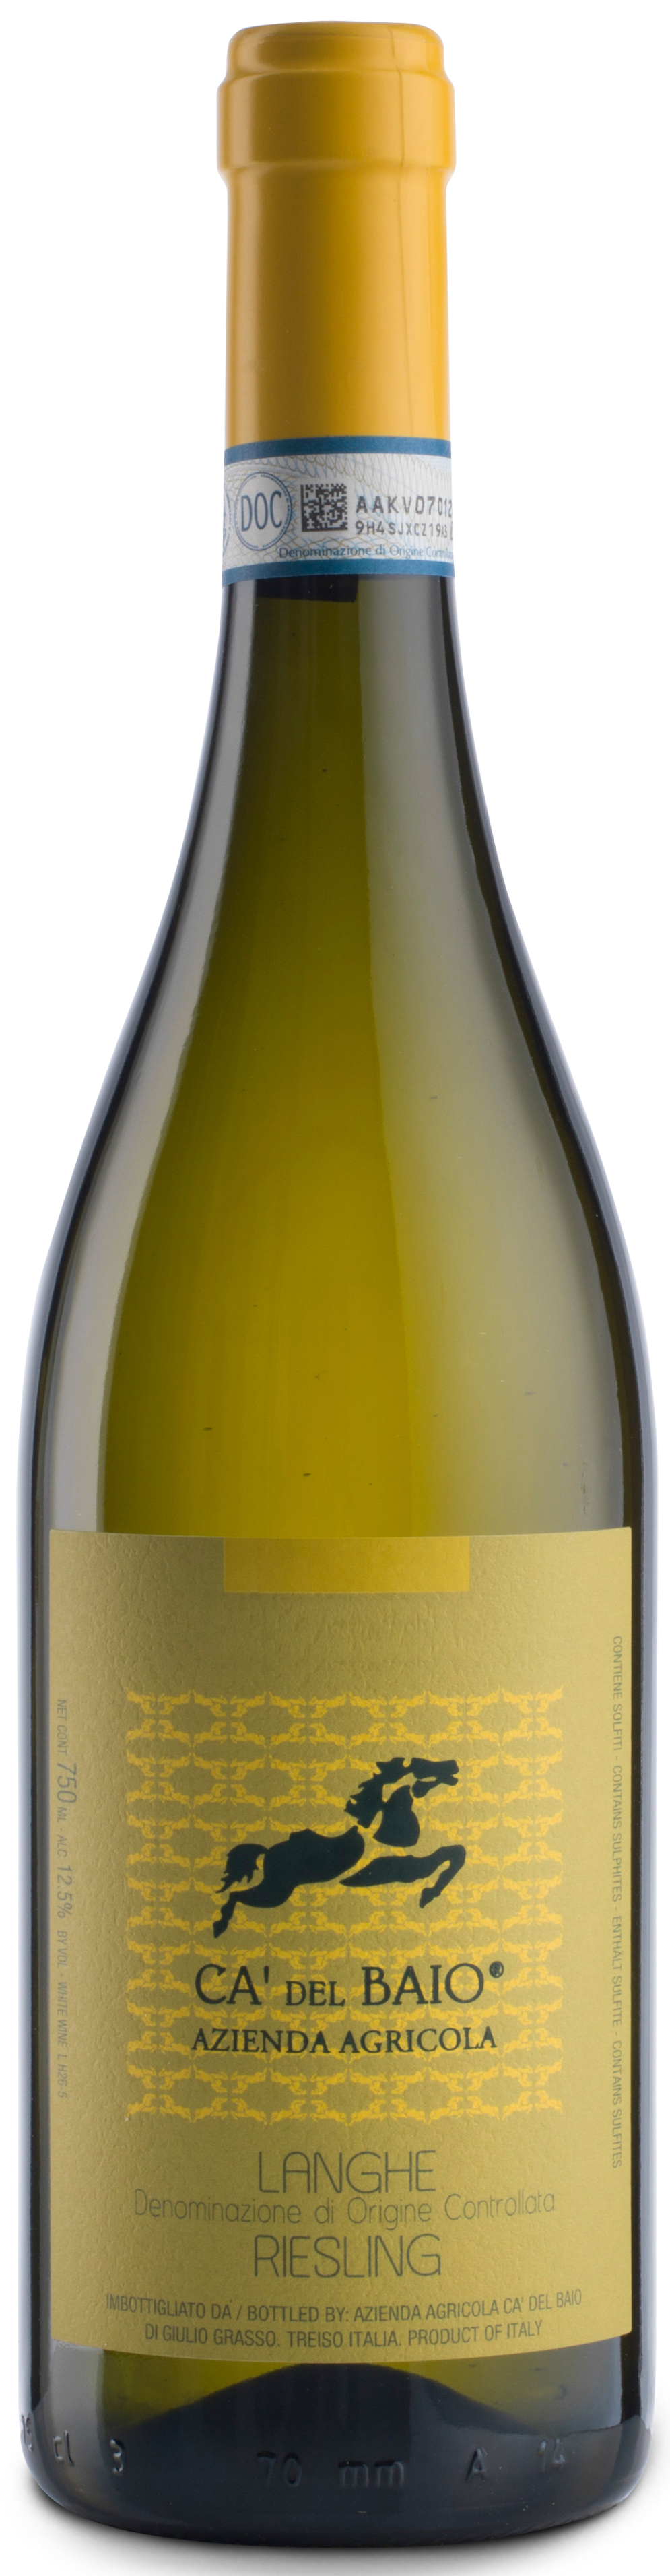 Ca' Del Baio, Langhe Riesling, 2017